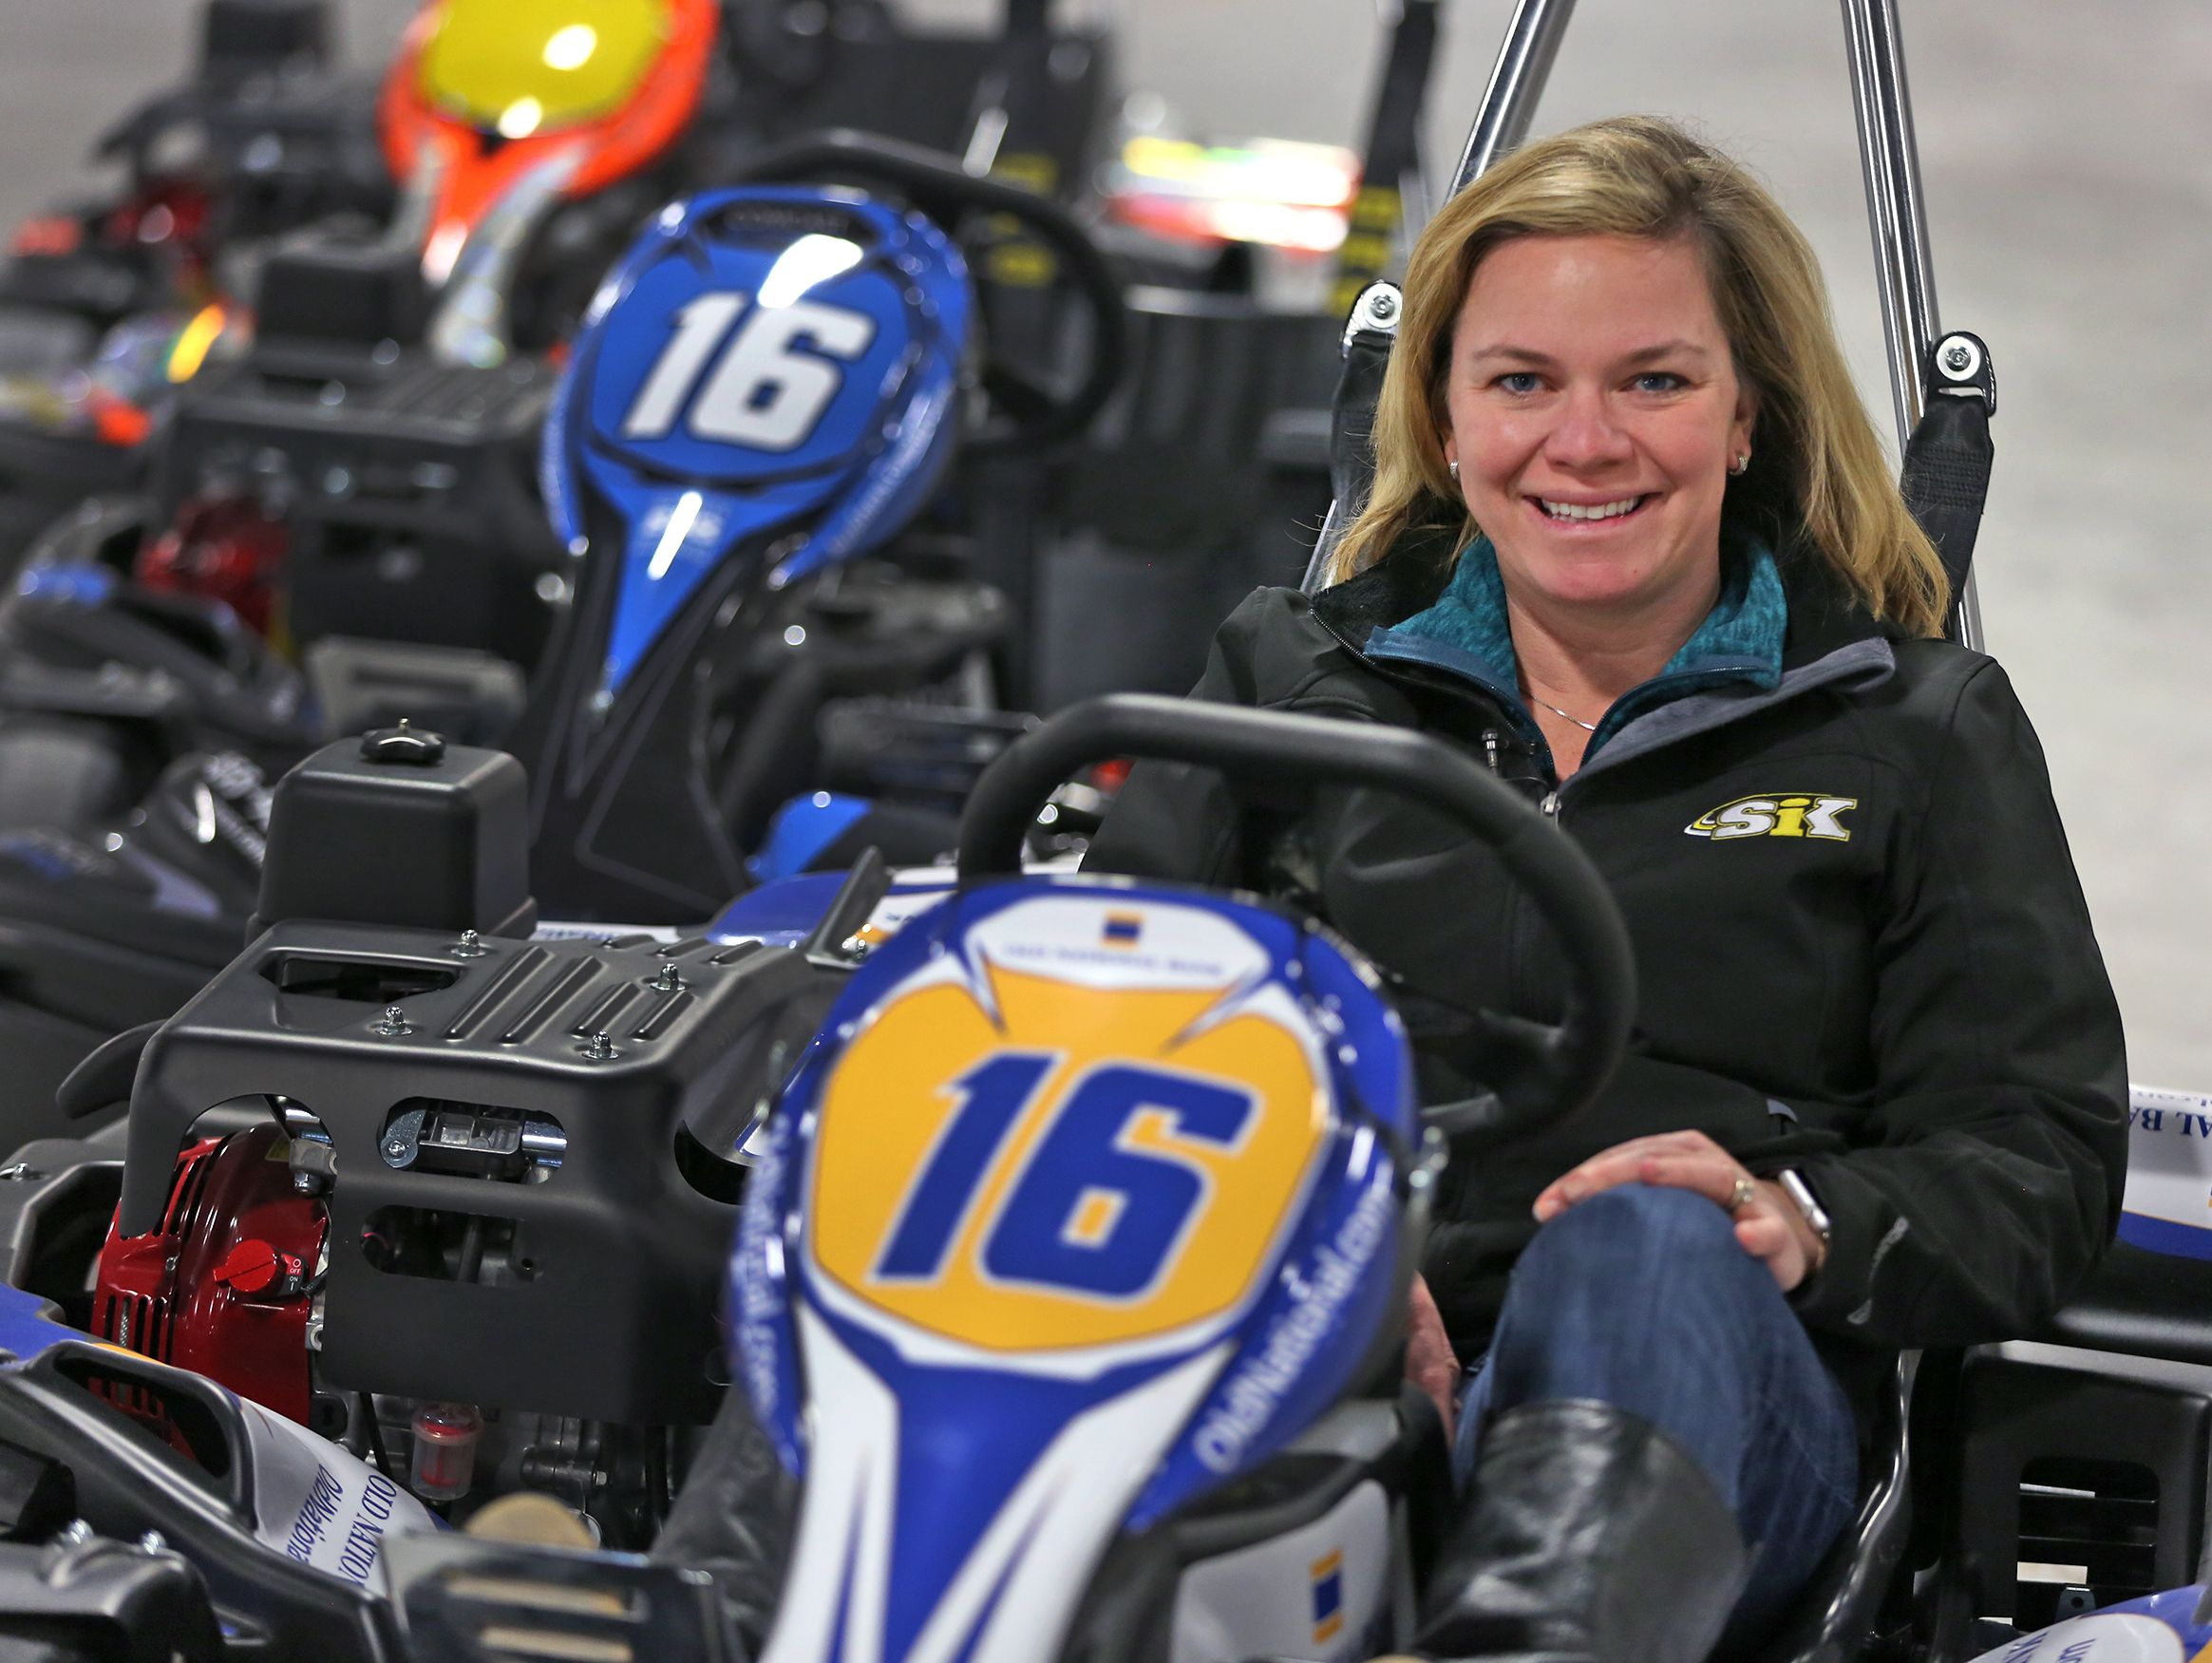 Former IndyCar driver Sarah Fisher sits in a go-cart at her soon-to-open Speedway business, Speedway Indoor Karting.